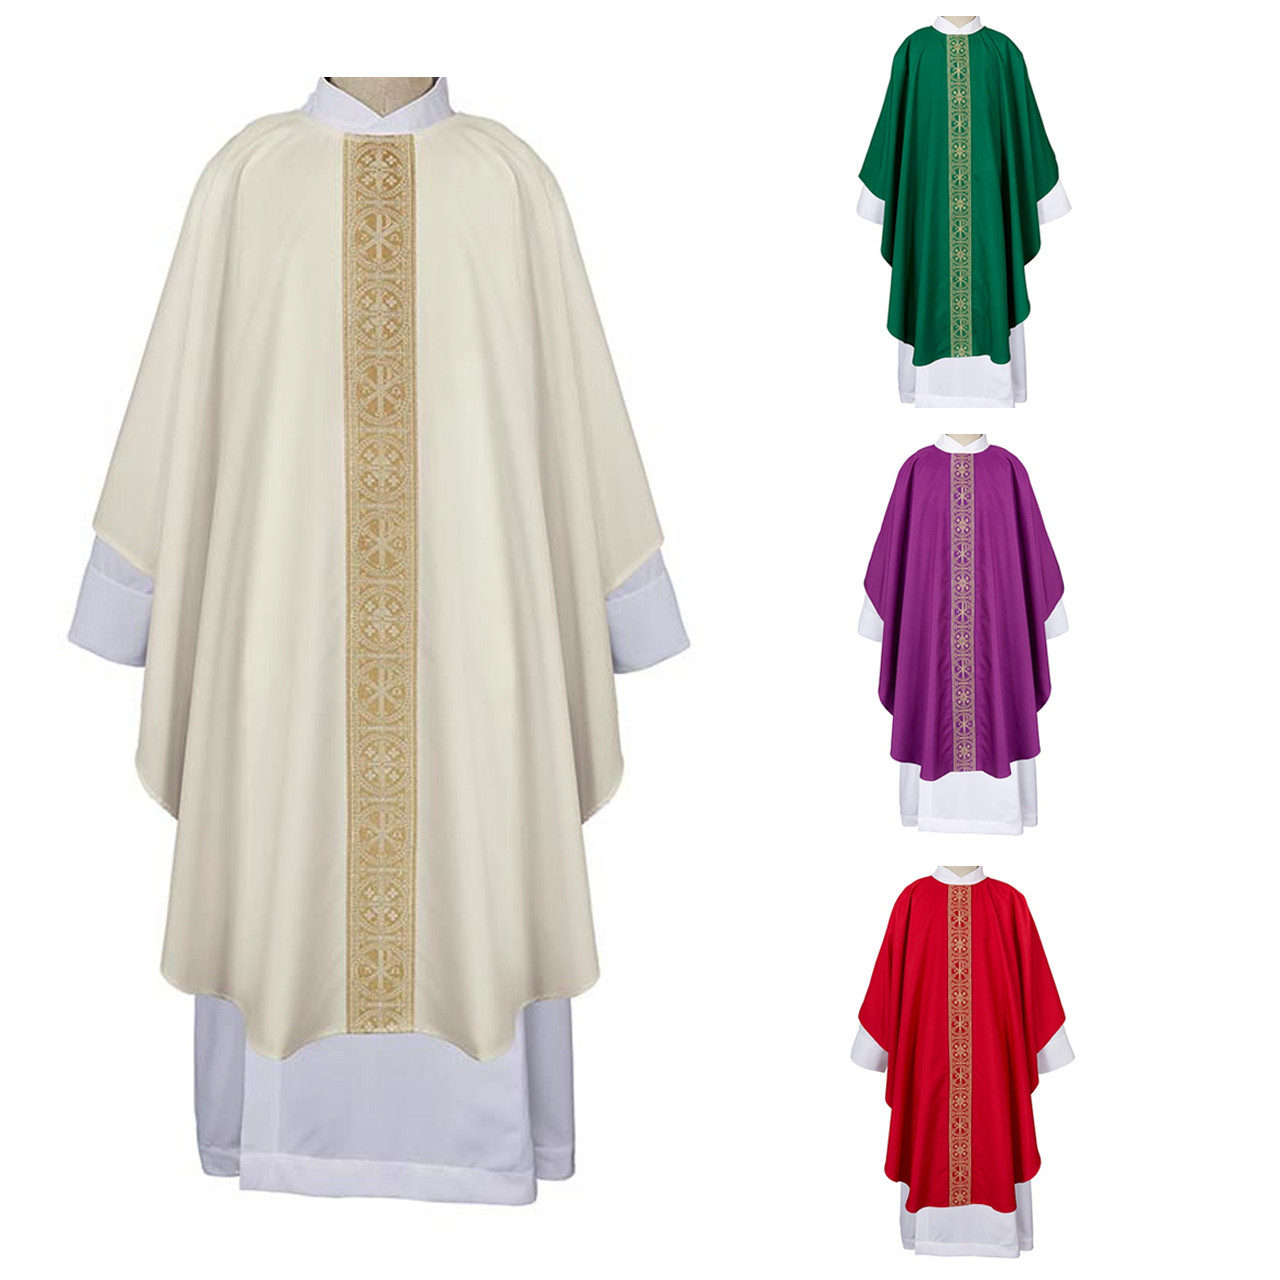 G4061 San Damiano Chasuble from R.J. Toomey